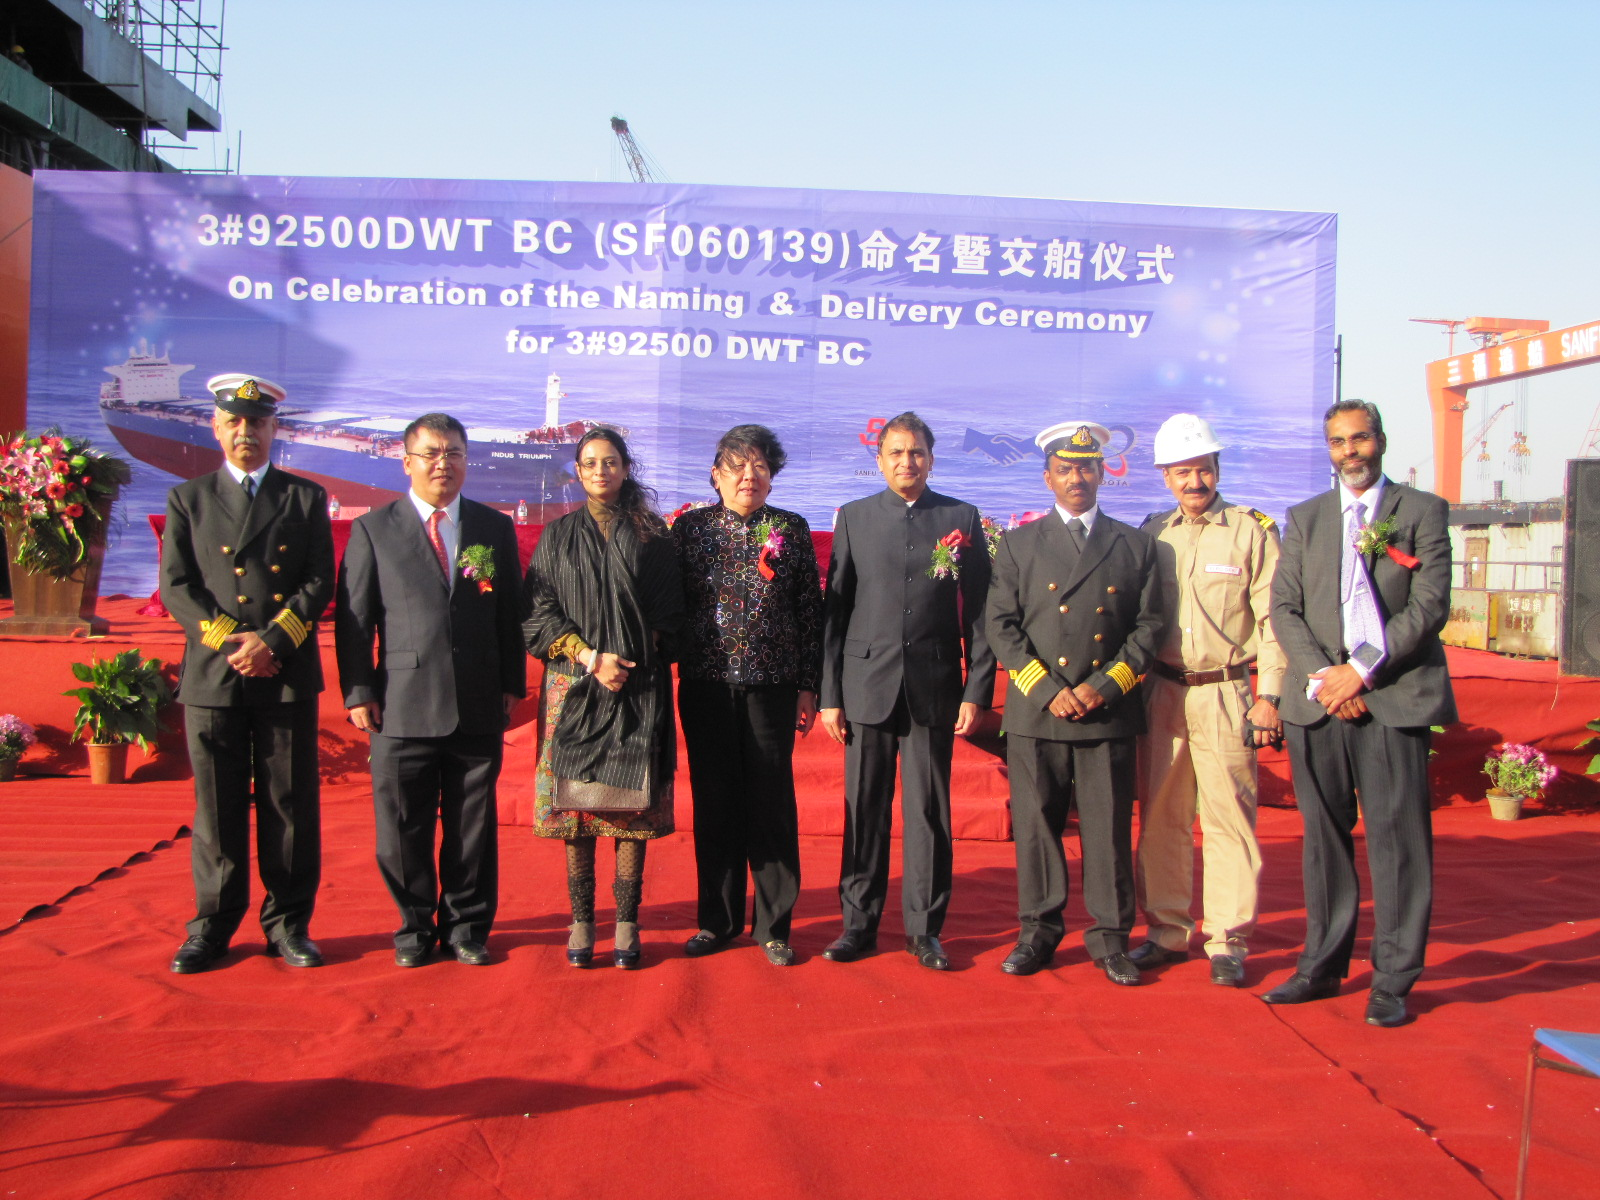 """The naming and delivery ceremony of MSPL's third ship """"Indus Triumph"""" in China, with Mrs Lavina.R.Baldota, Mr. Rahul.N.Baldota and Mr.M.Suresh Kumar (clockwise) with Chinese officials."""